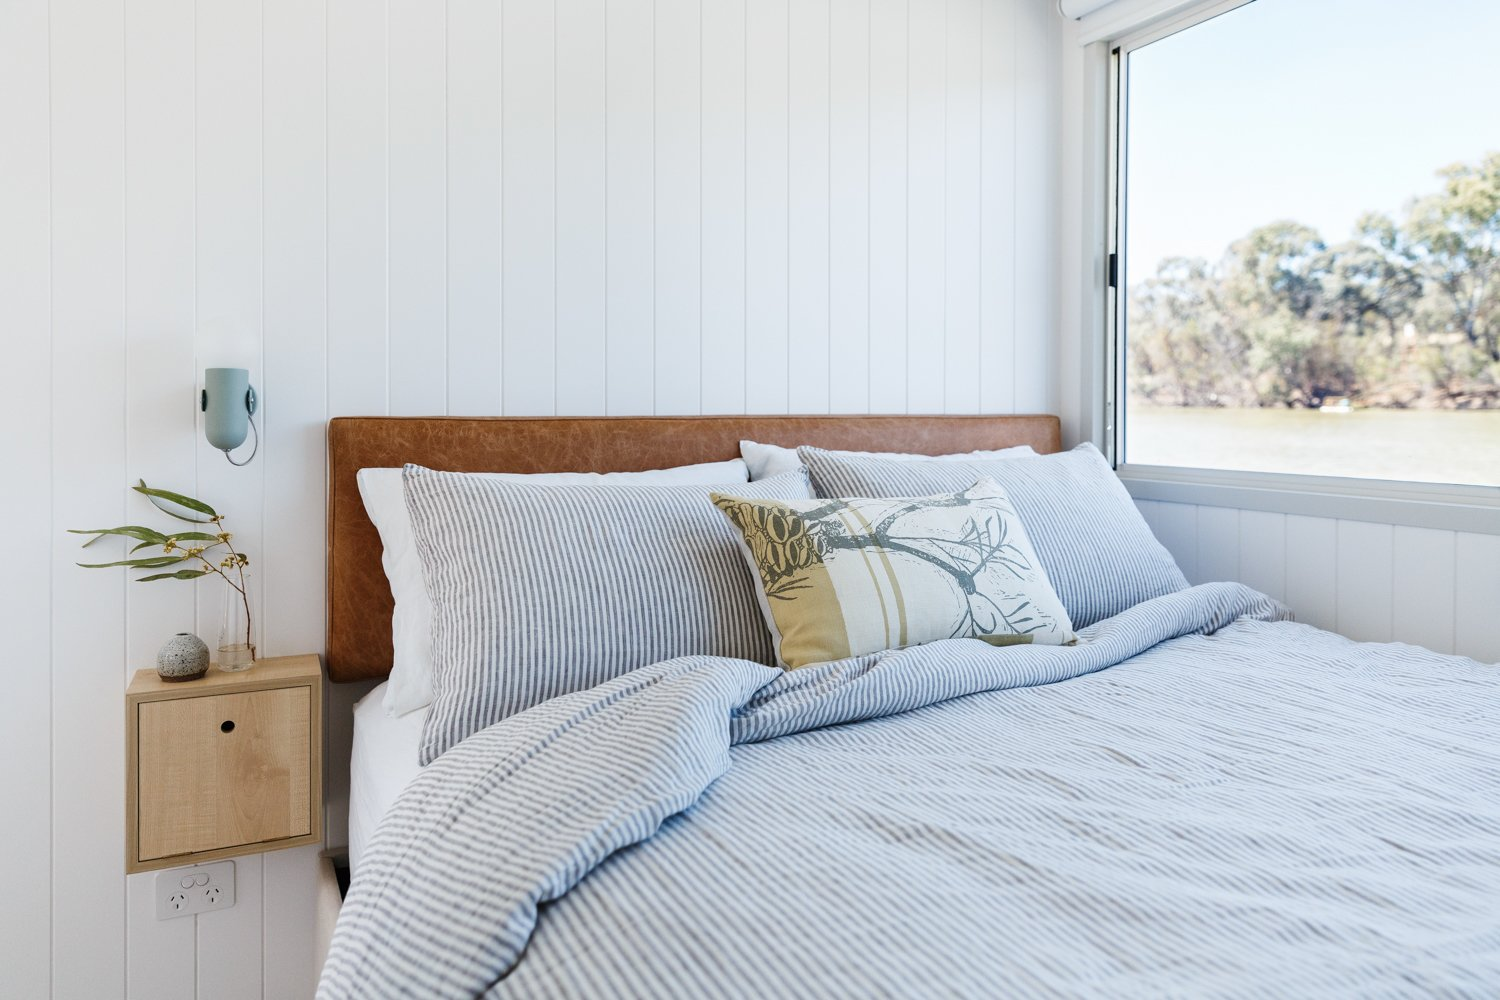 Bedroom, Bed, Storage, Wall Lighting, and Night Stands Bedrooms capitalize on river views and built-in storage.  Photo 12 of 14 in Life in This Renovated Houseboat Would Be But a Dream